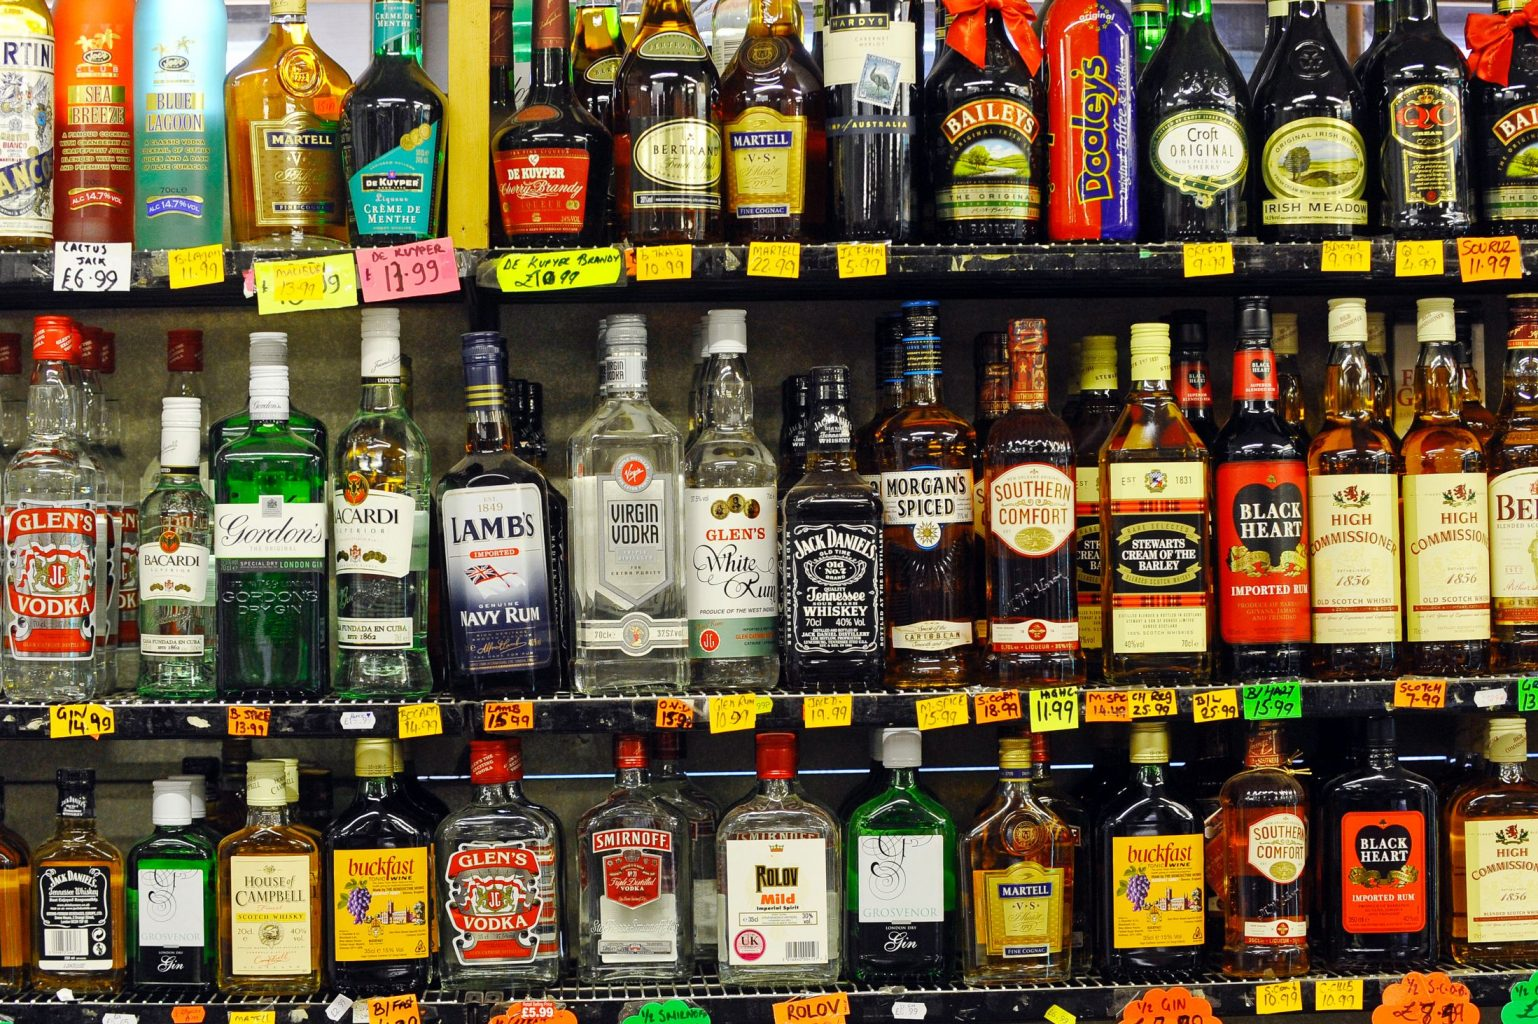 Medical Condition Controversy: Is Alcoholism a Disease?